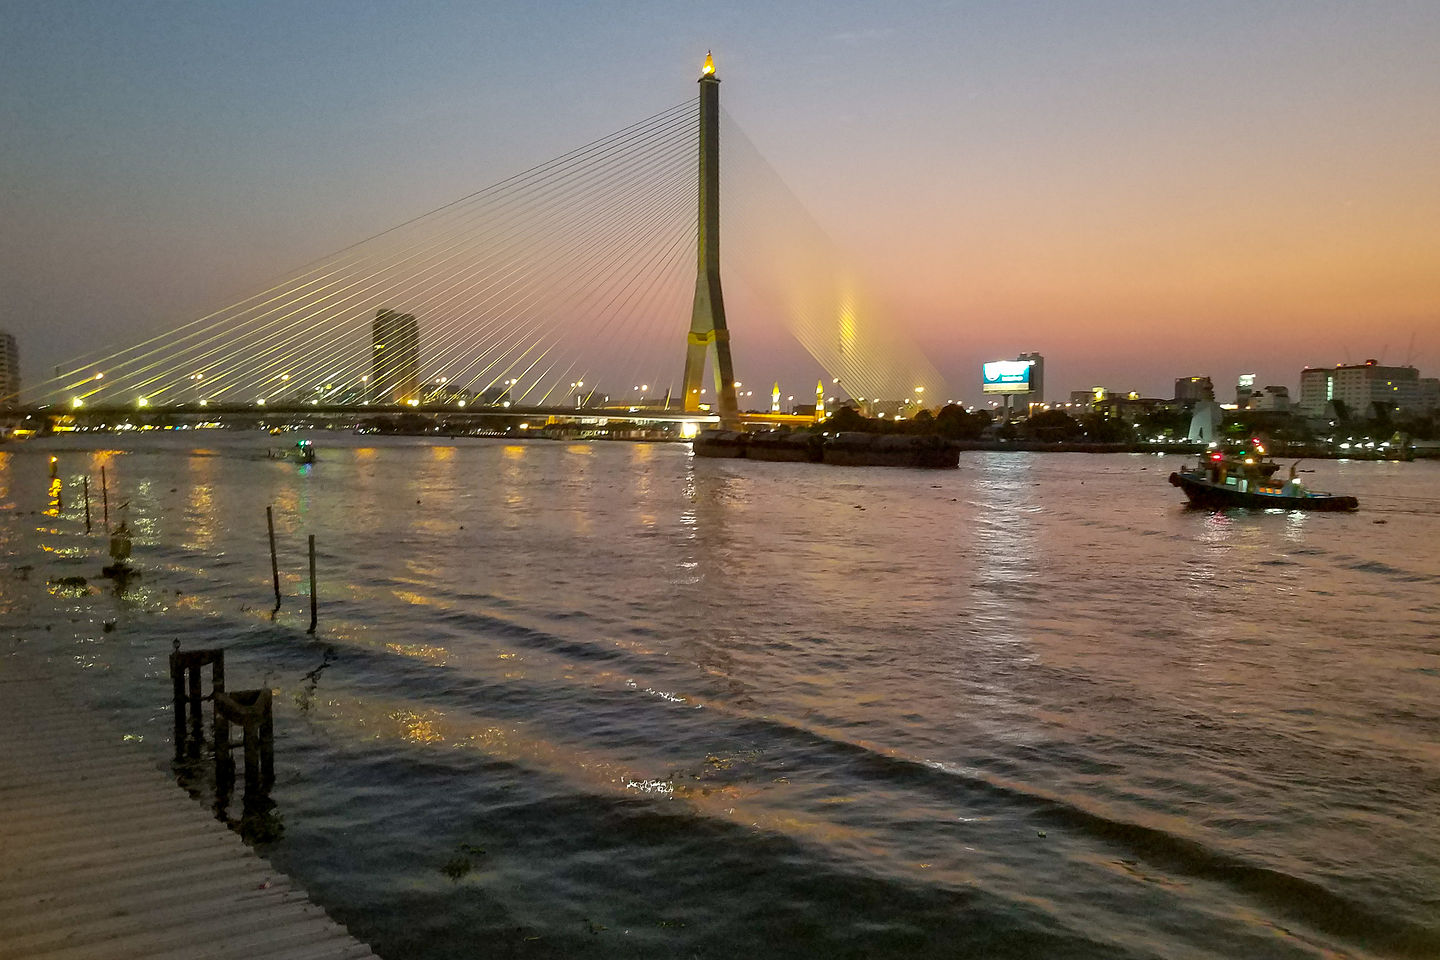 View of Chao Phraya River from In Love outdoor patio